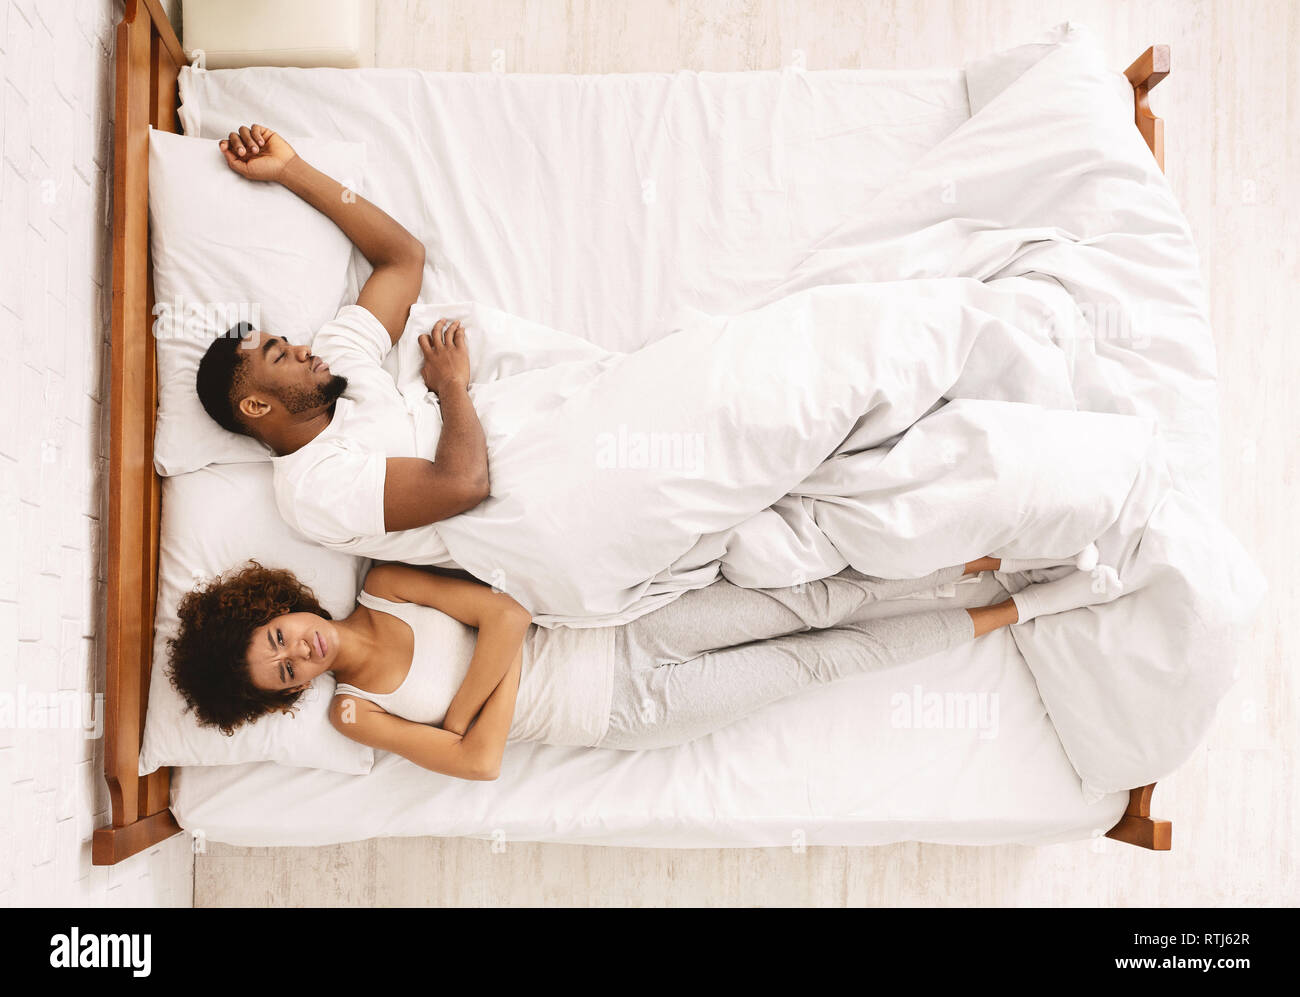 Sad woman lying in bed with sleeping man - Stock Image